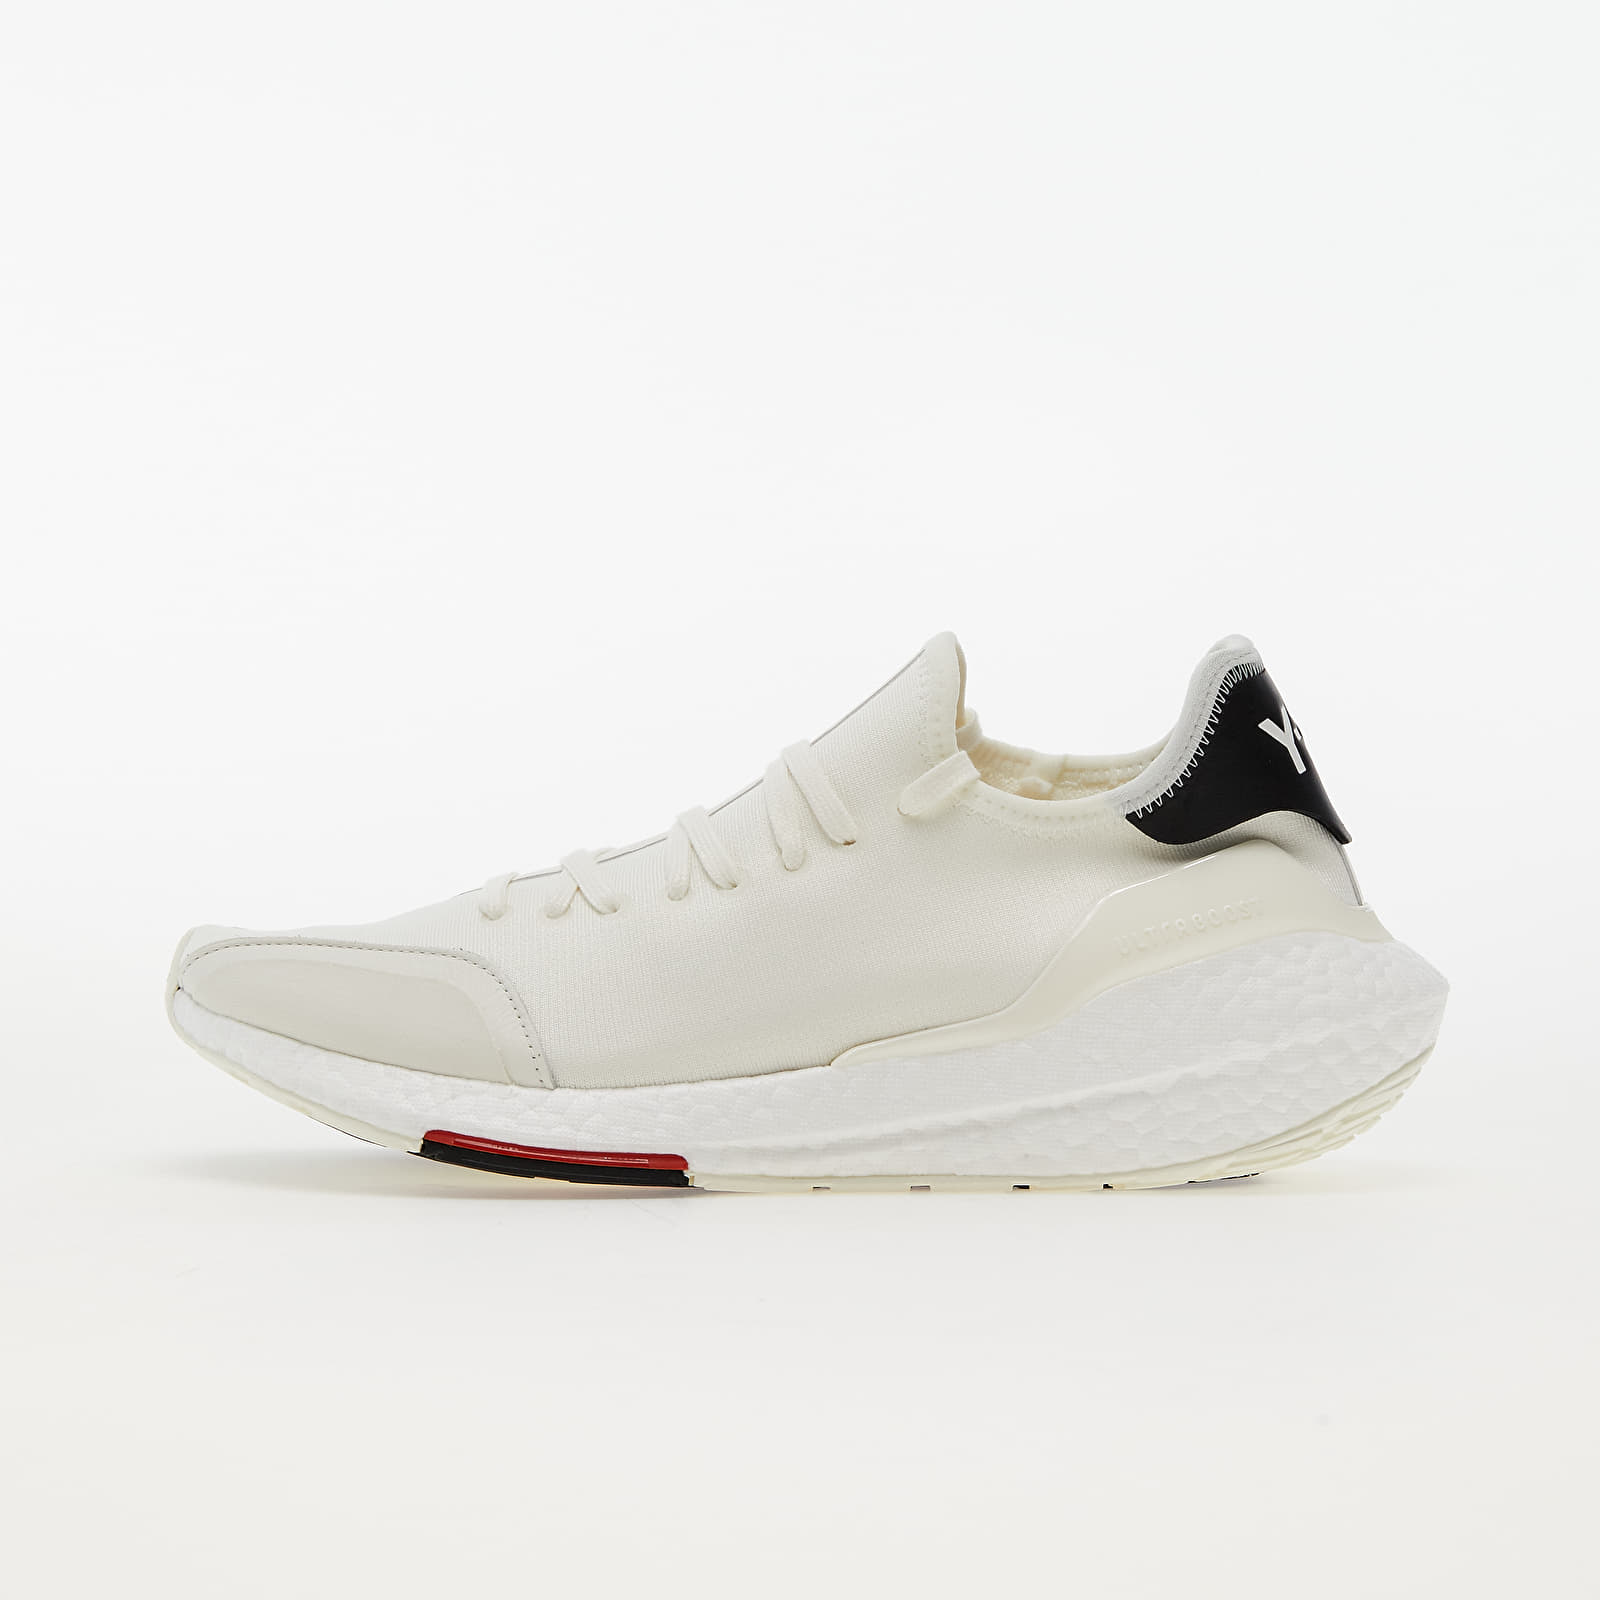 Y-3 UltraBOOST 21 Core White/ Red/ Black H67477